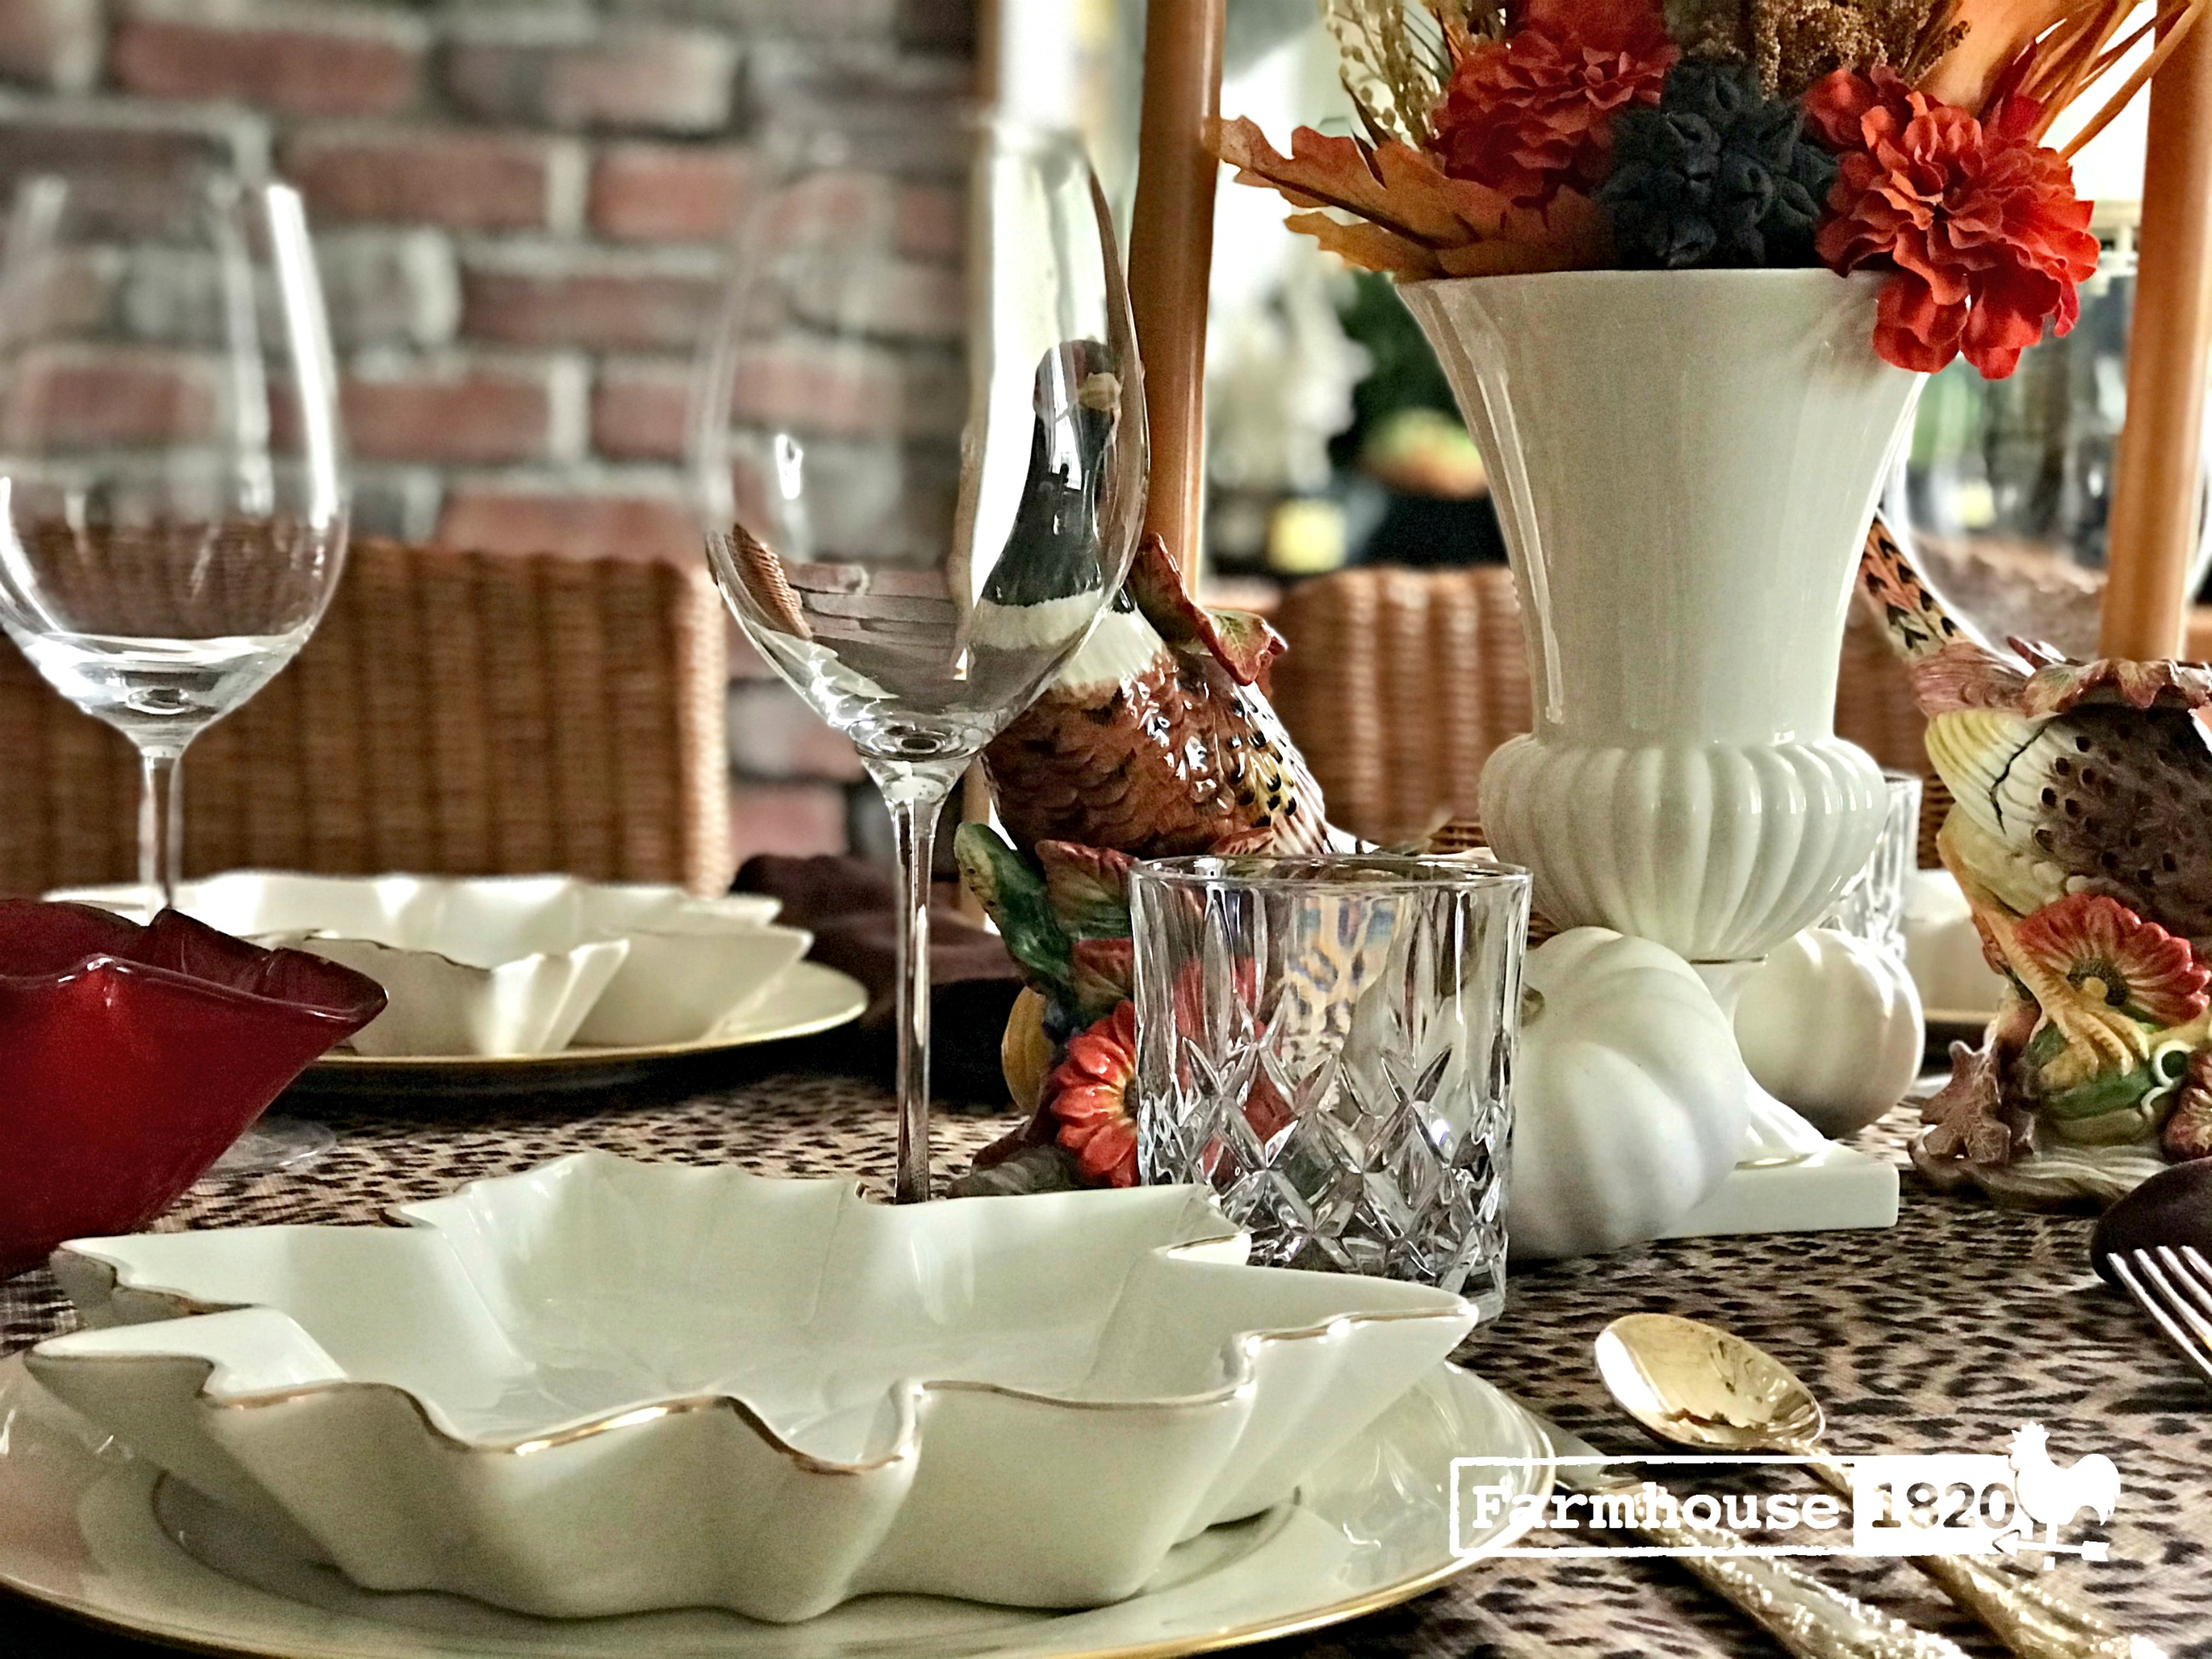 Thanksgiving table - a beautiful Thaksgiving tablesetting